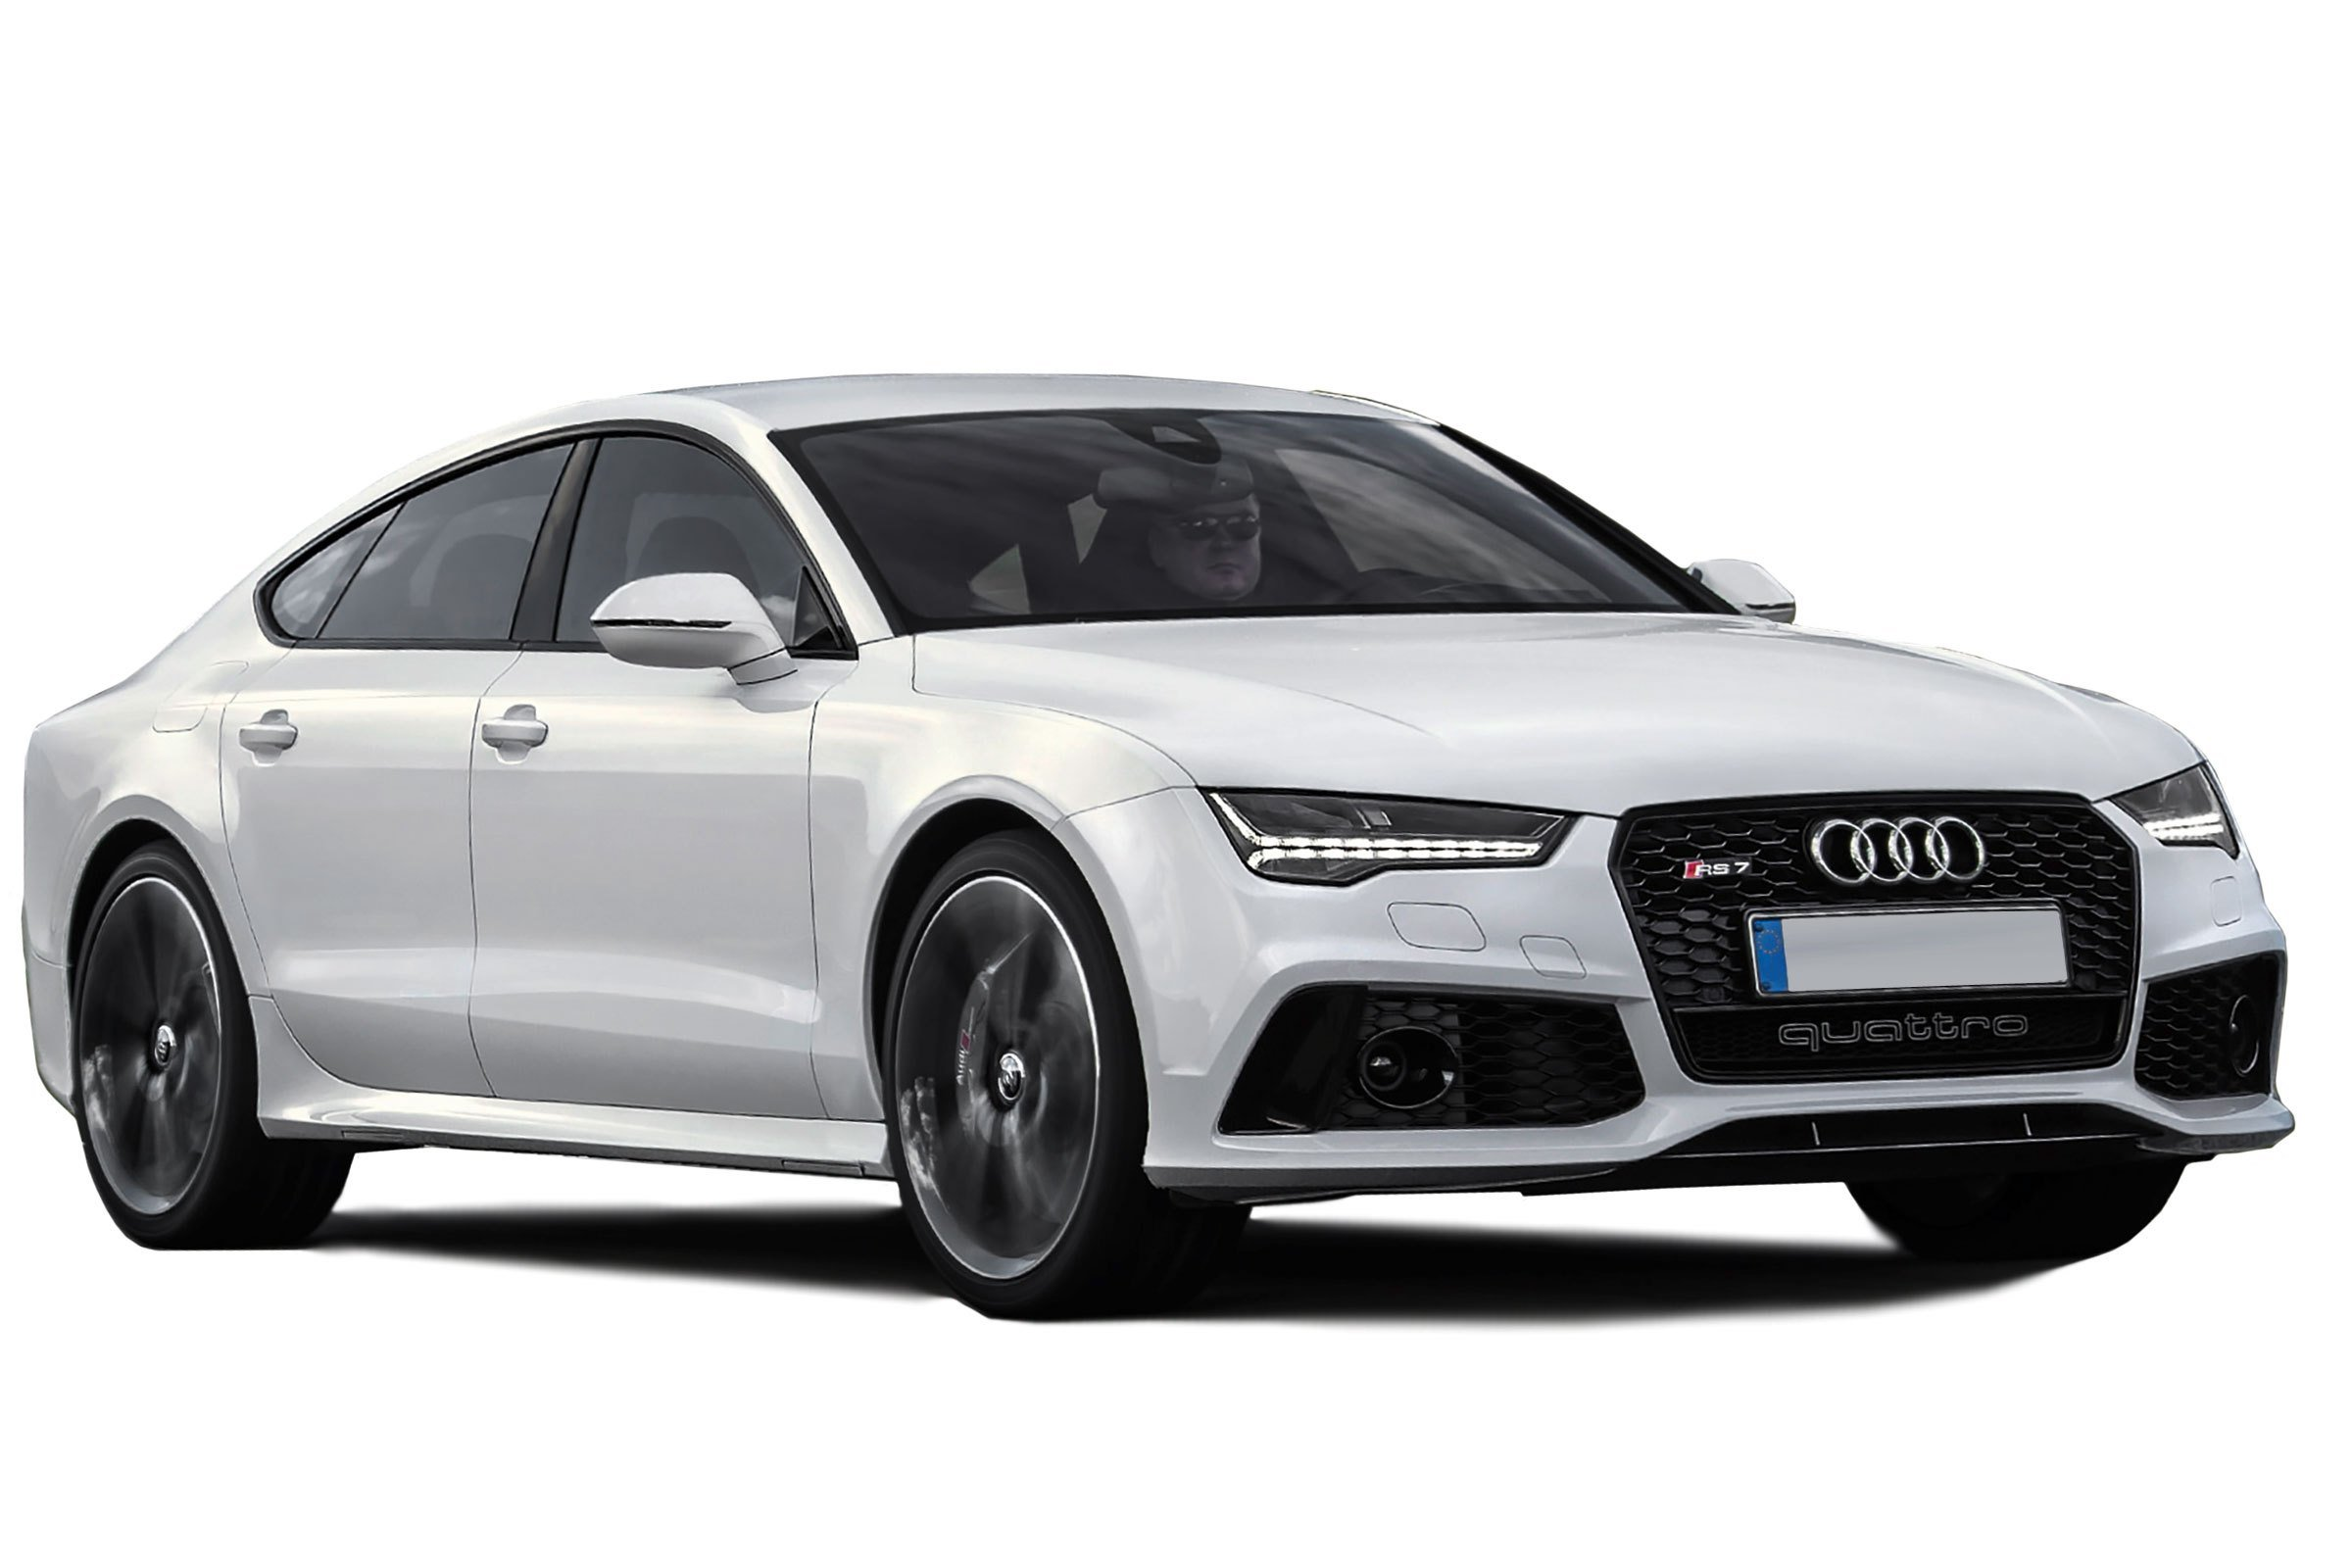 Latest Audi Rs7 Cutout Yourdreamcar Motors Ltd Free Download